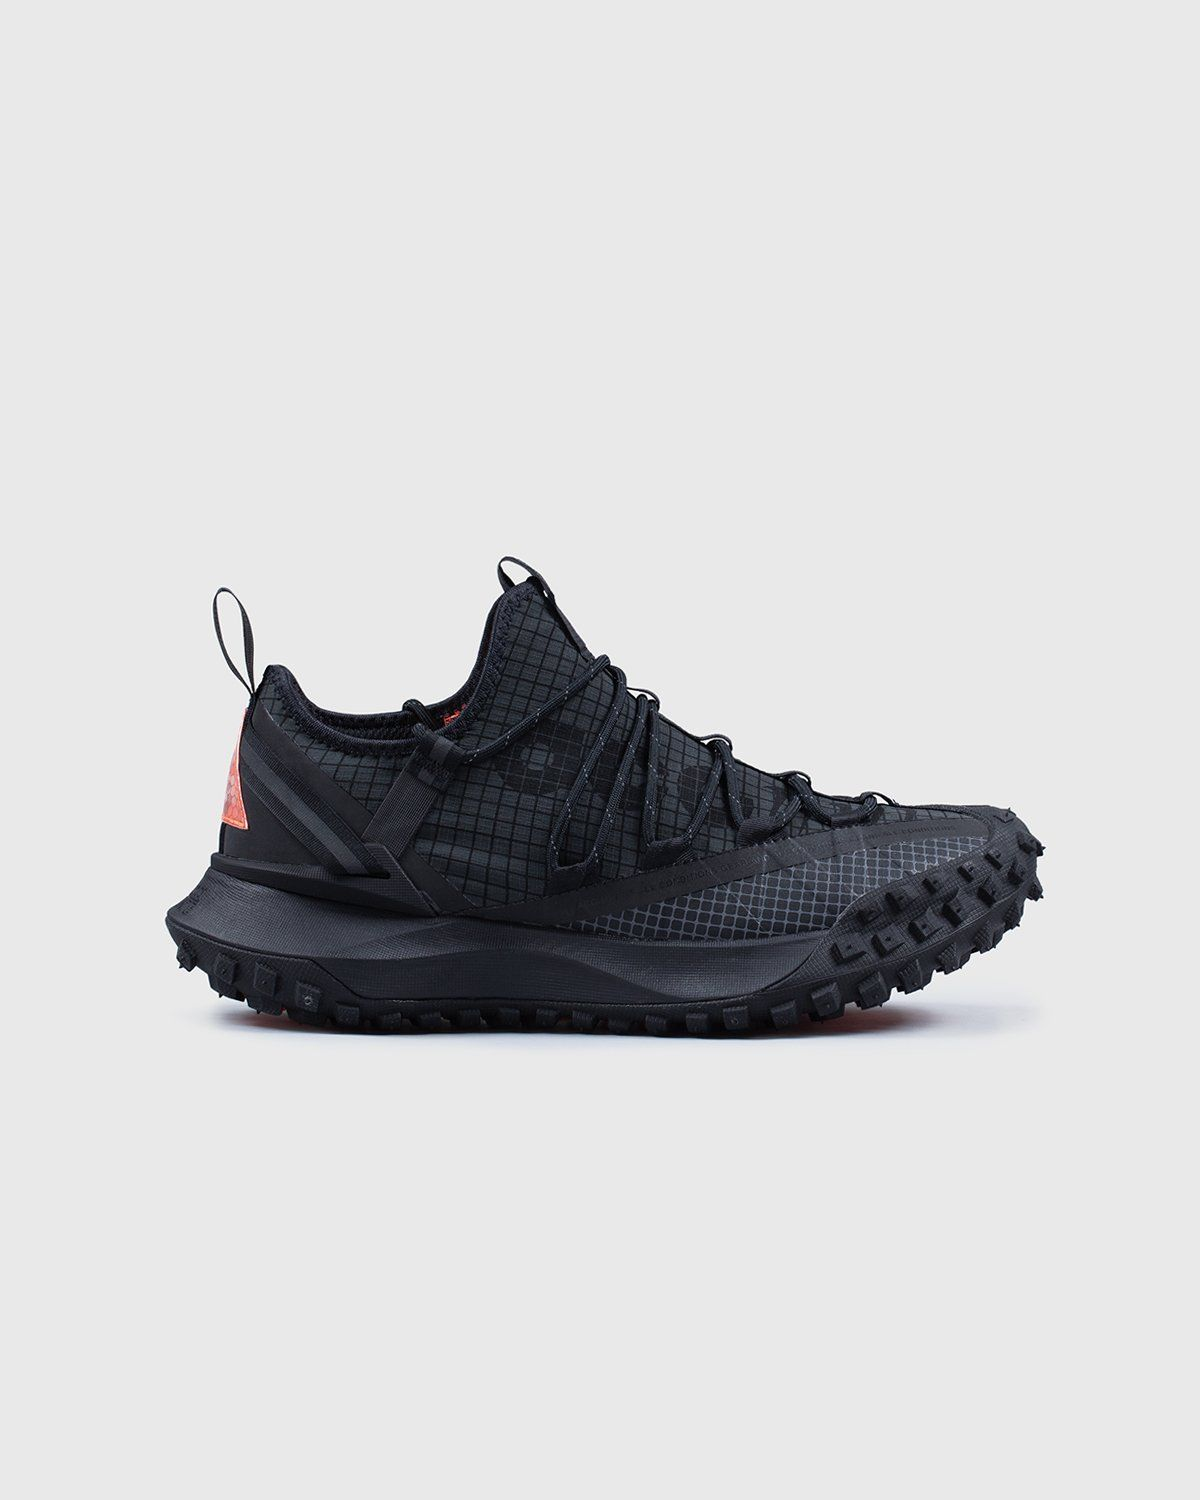 NIKE ACG - ACG MOUNTAIN FLY LOW ANTHRACITE - Image 1